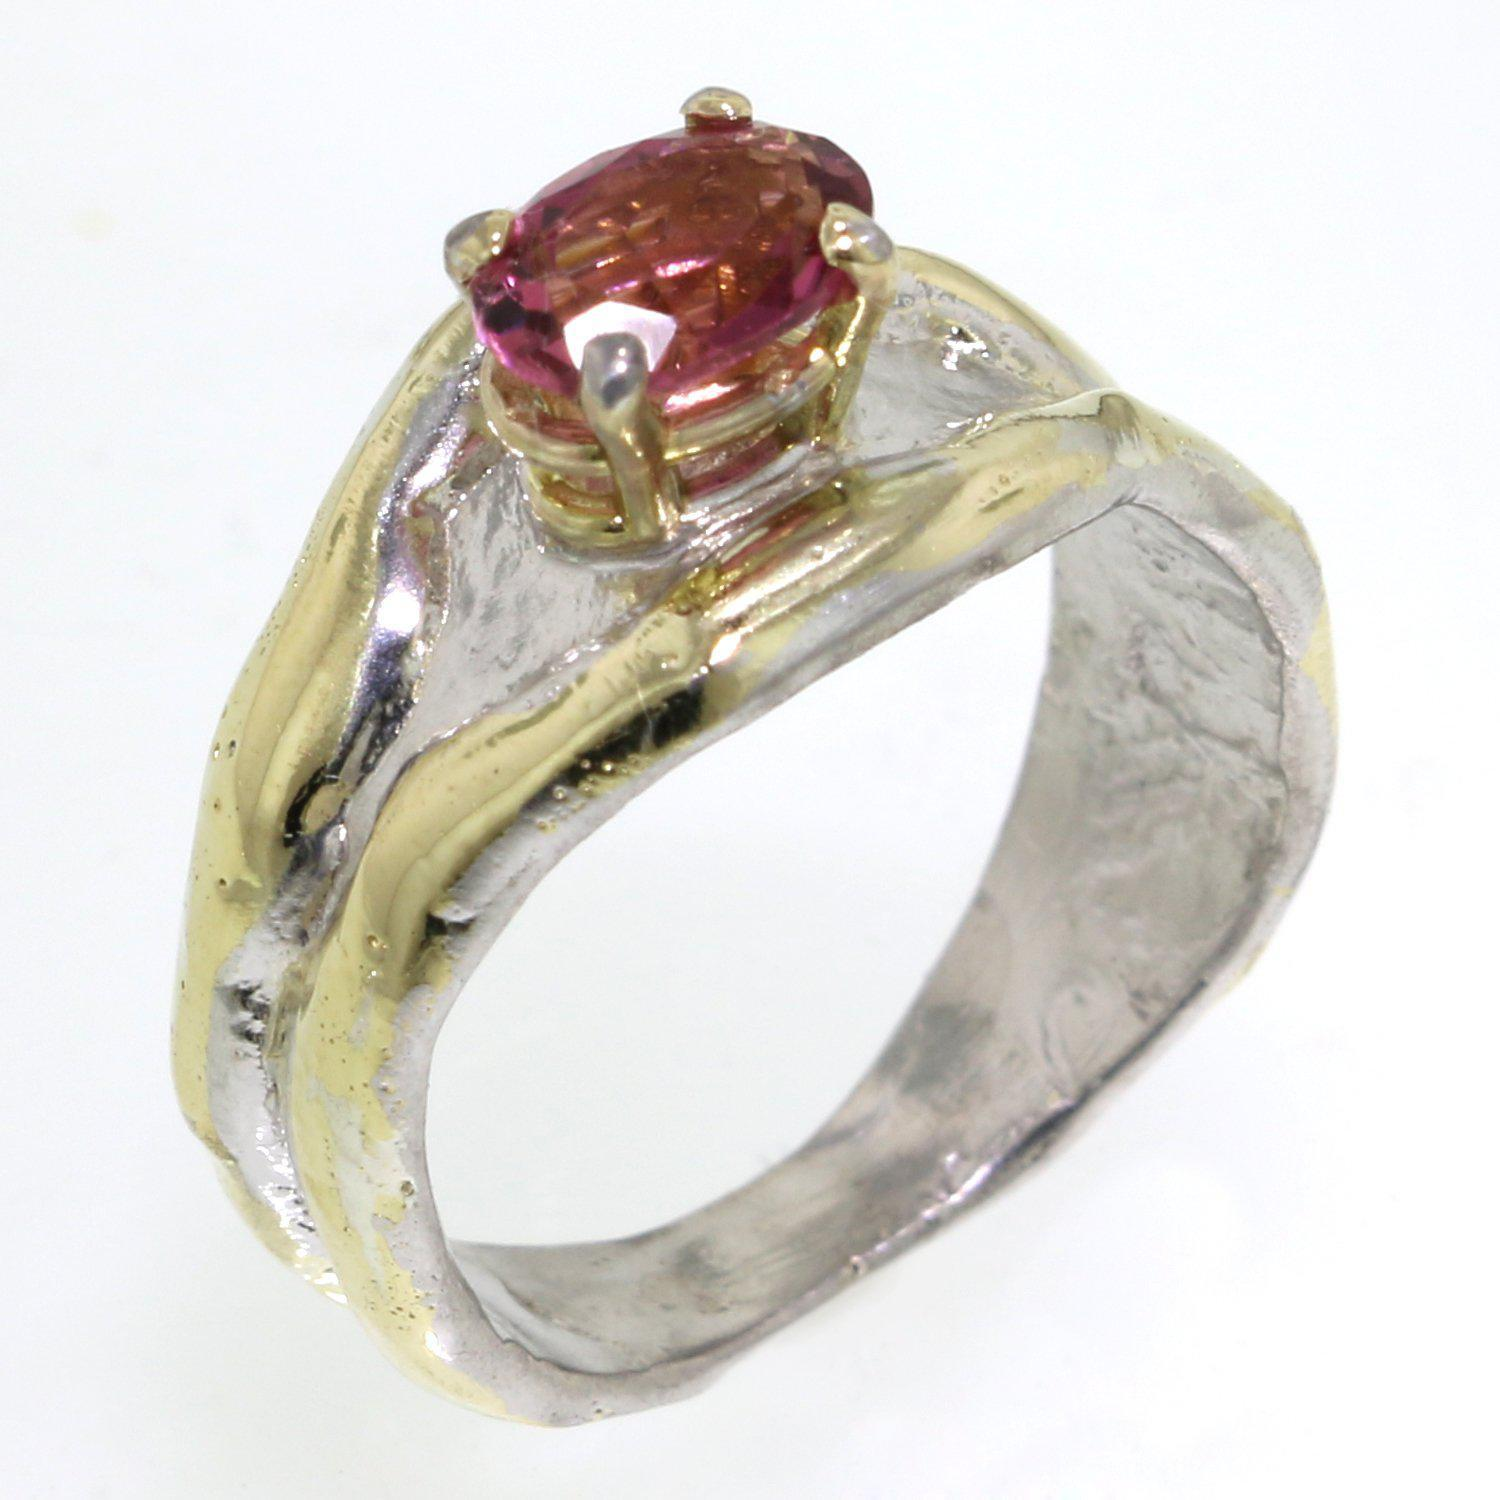 14K Gold & Crystalline Silver Pink Tourmaline Ring - 31932-Fusion Designs-Renee Taylor Gallery